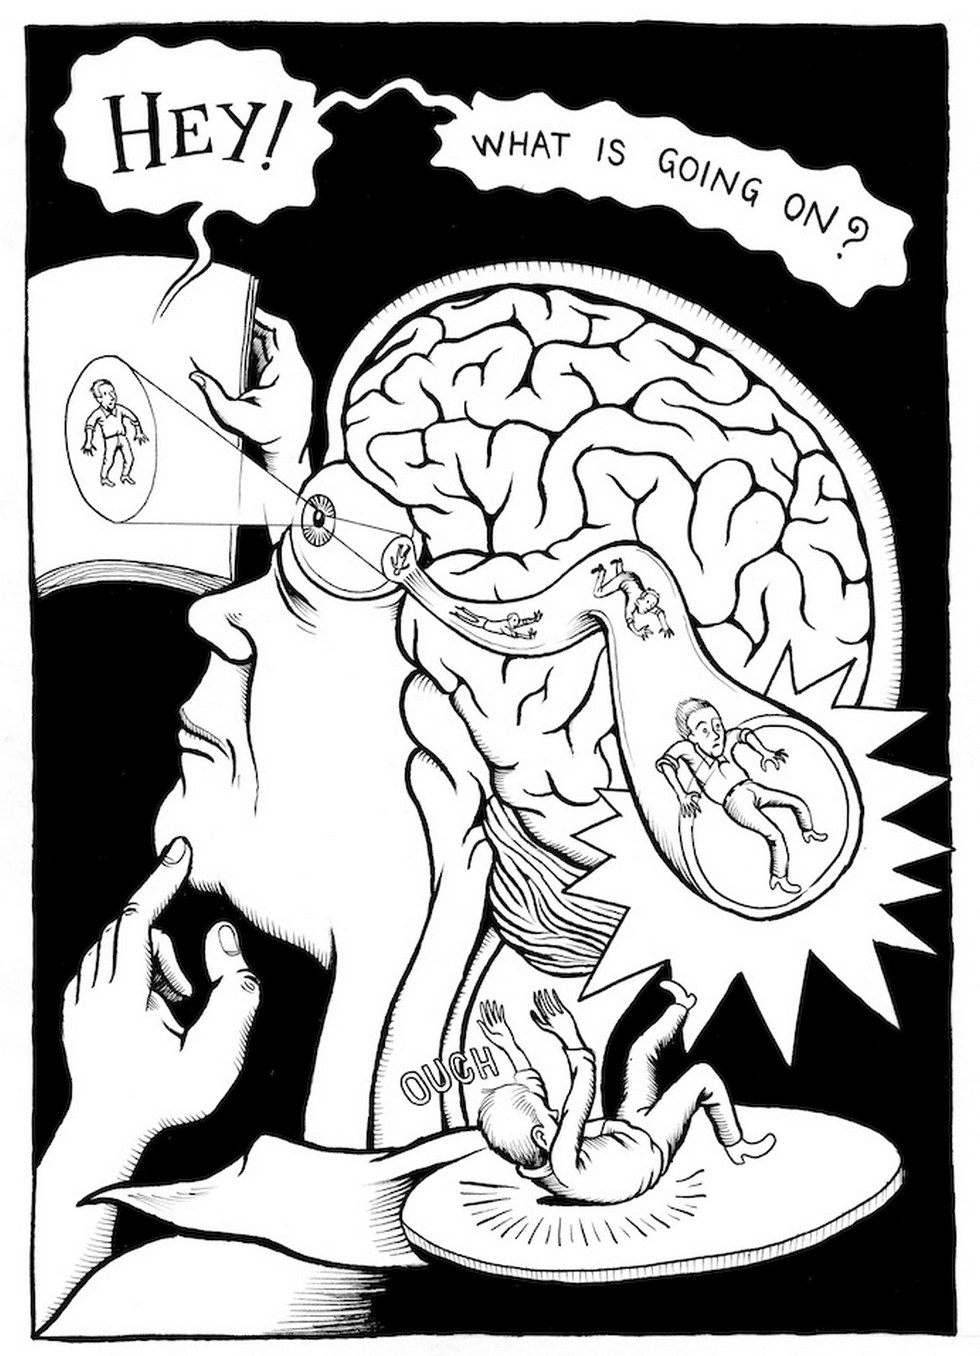 Neurocomic brain - Businessillustrator.com